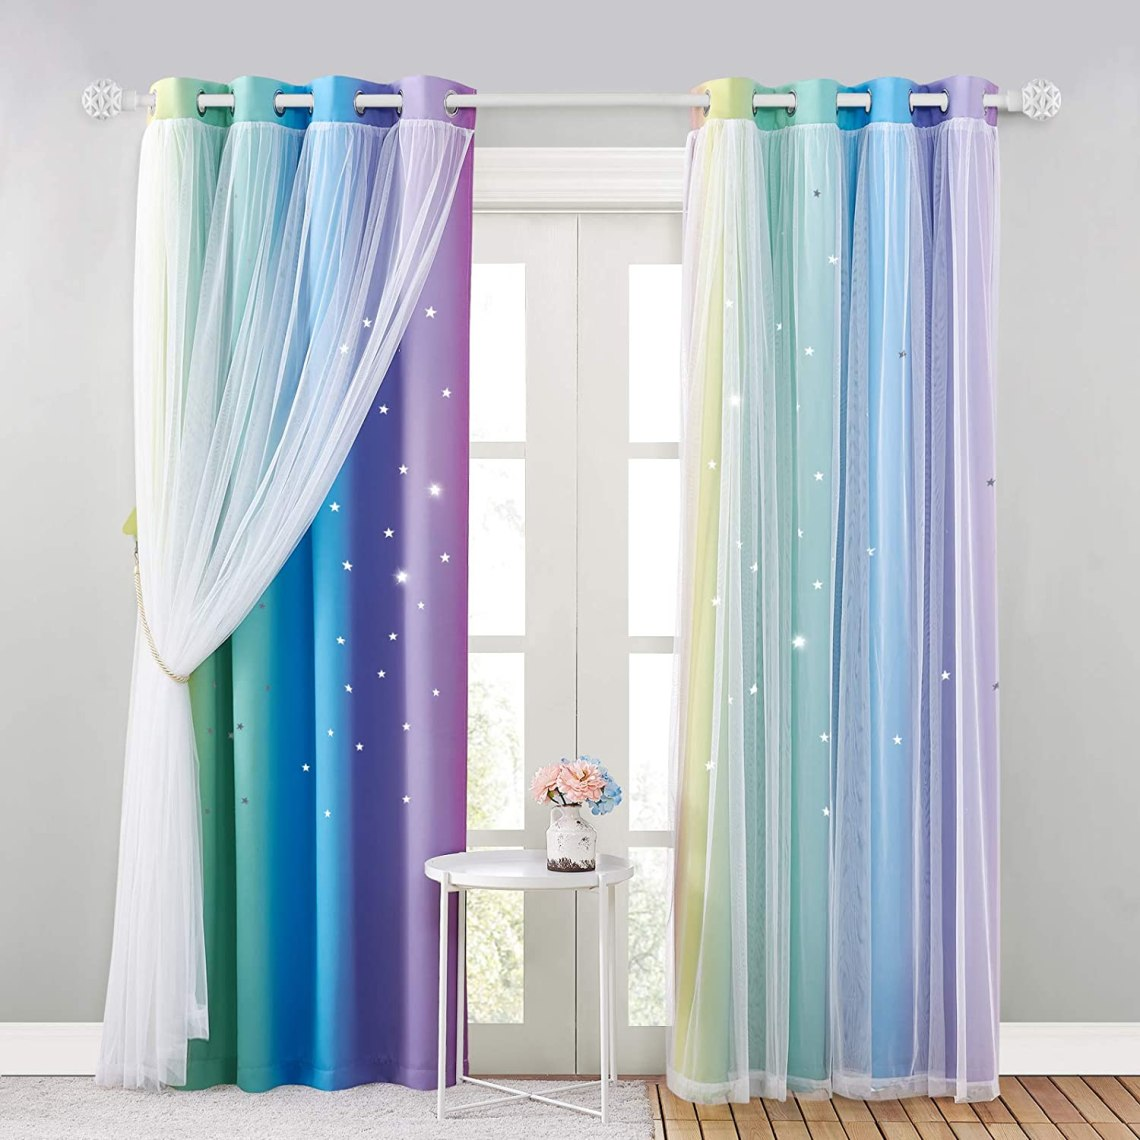 Amazon Com Nicetown Kids Room Decor For Girls Kids Baby Girl Nursery Decor For Girls Room Rainbow Printing Curtain Panels Paradise Whimsy Home Decoration Drapes Rainbow 2 2 Pieces W104 X L95 Home